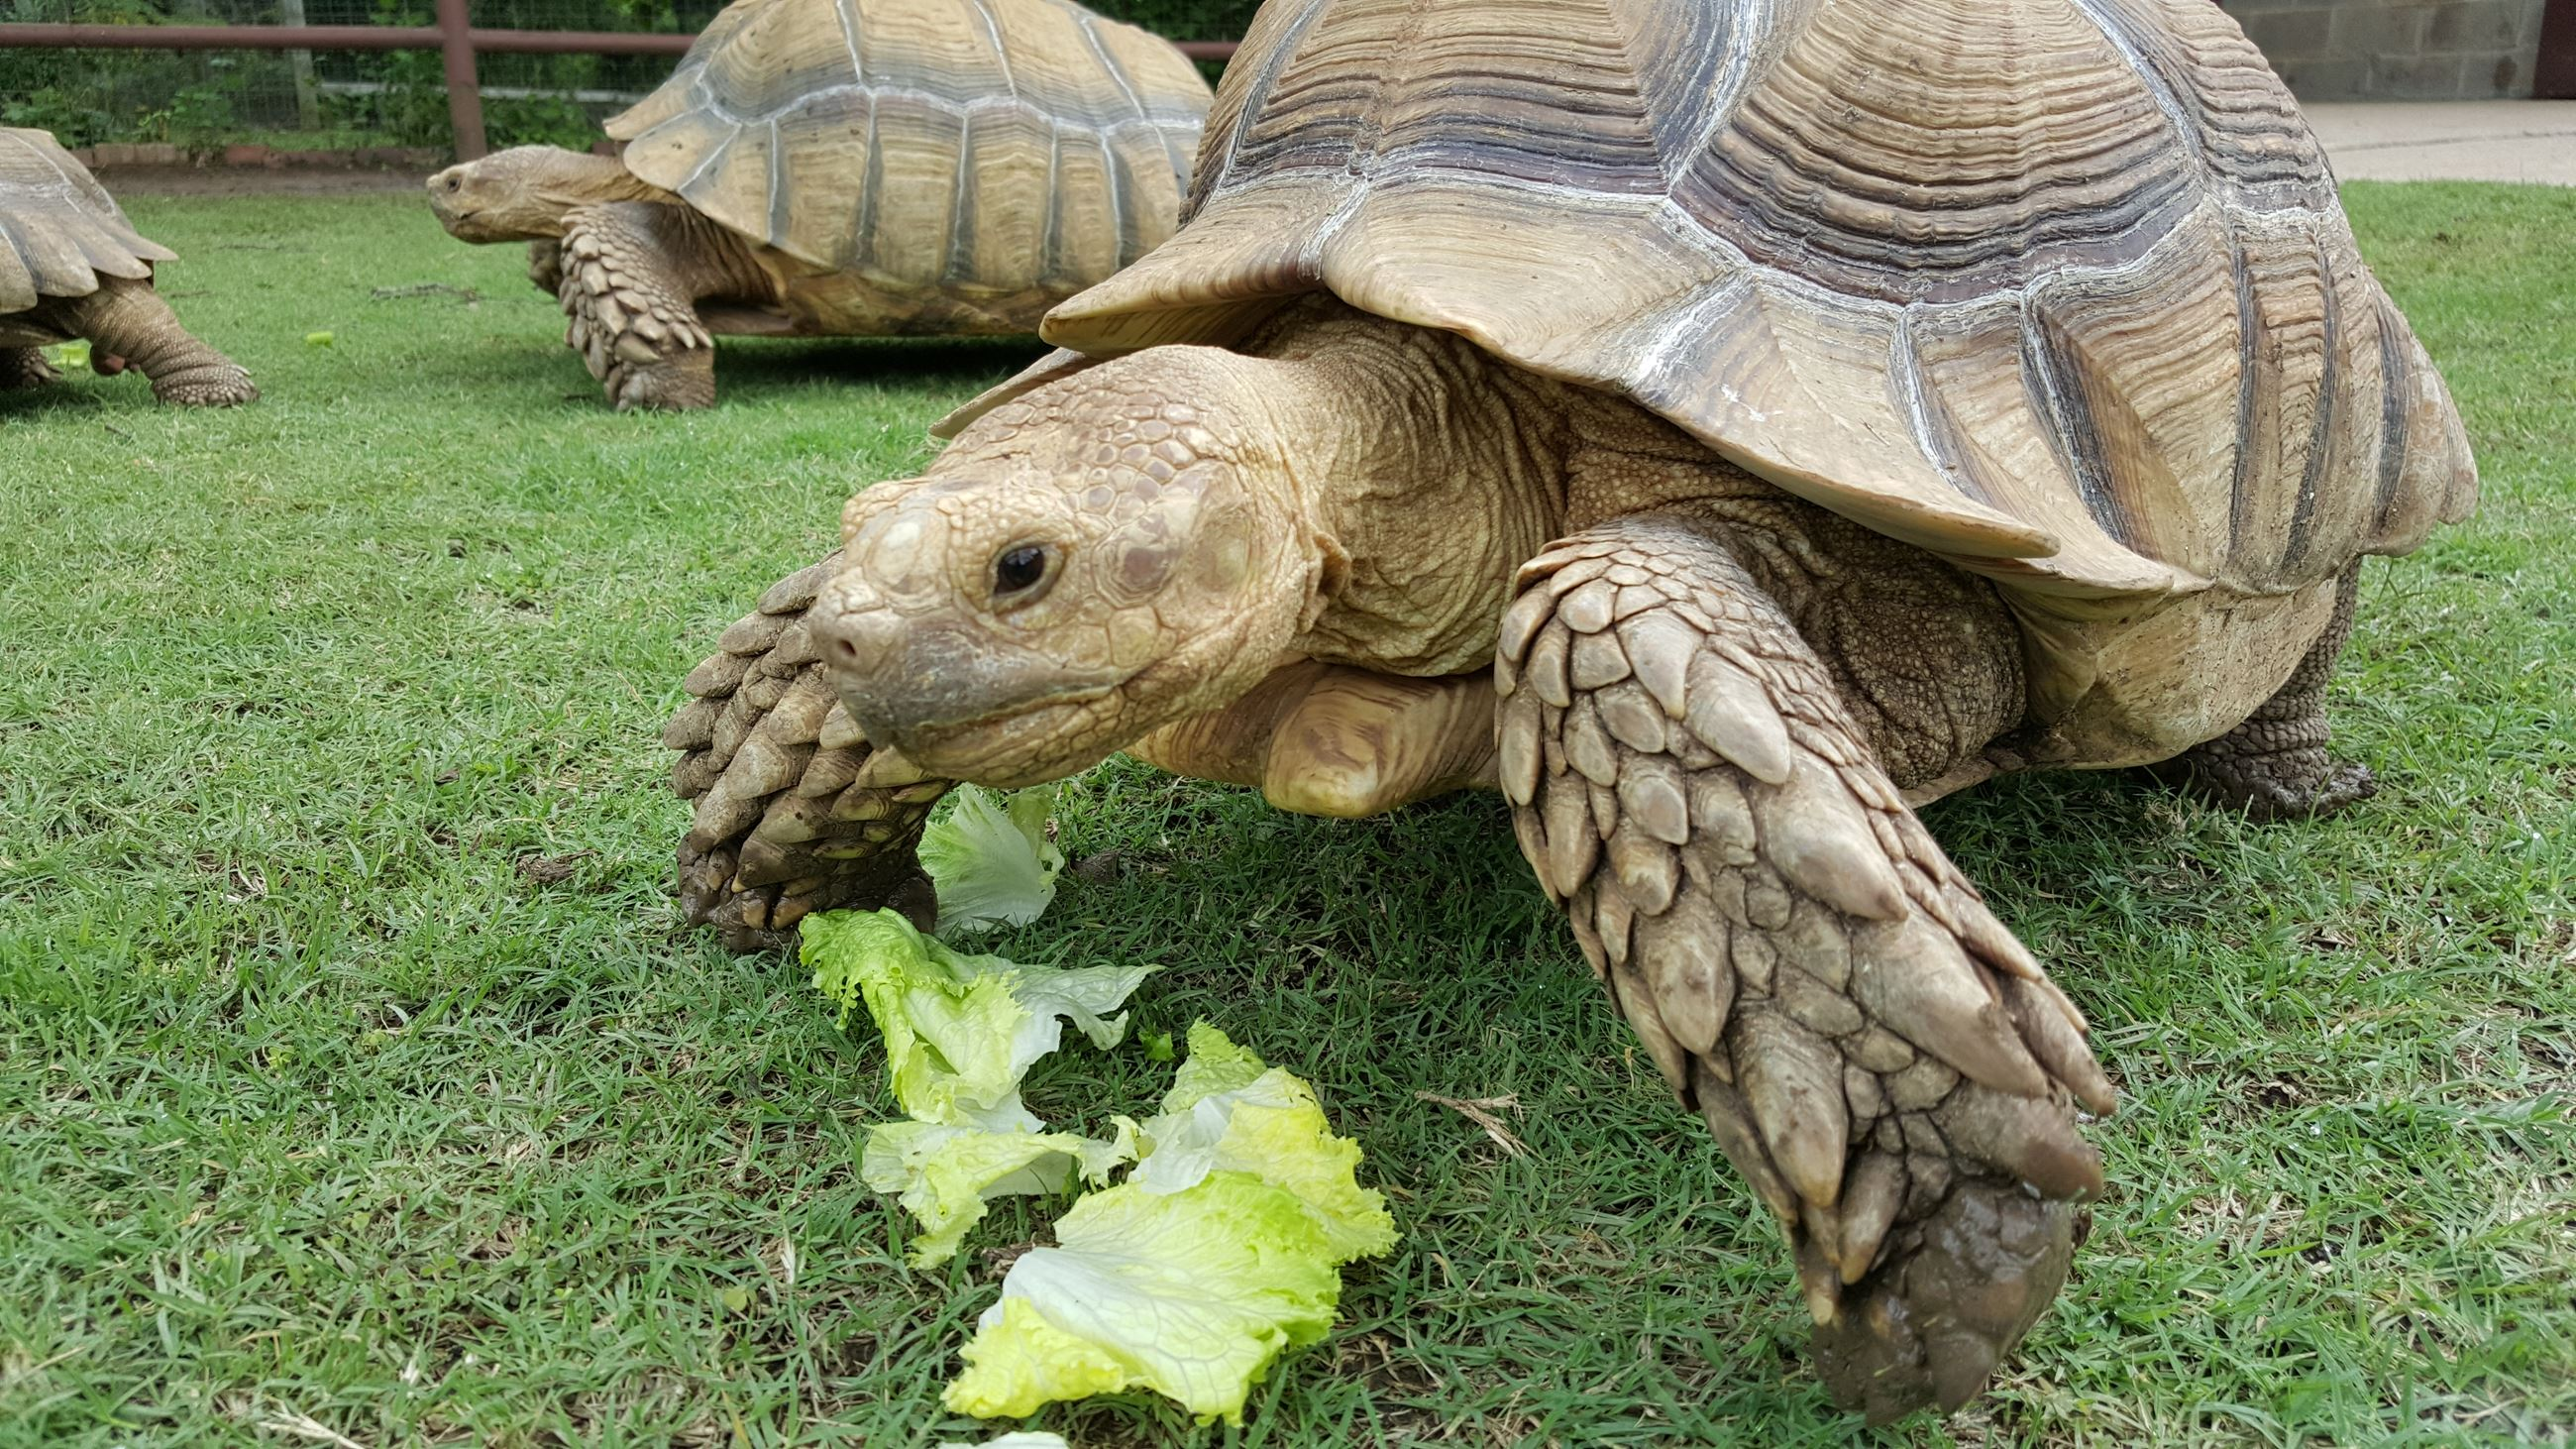 Large tortoises eating lettuce.